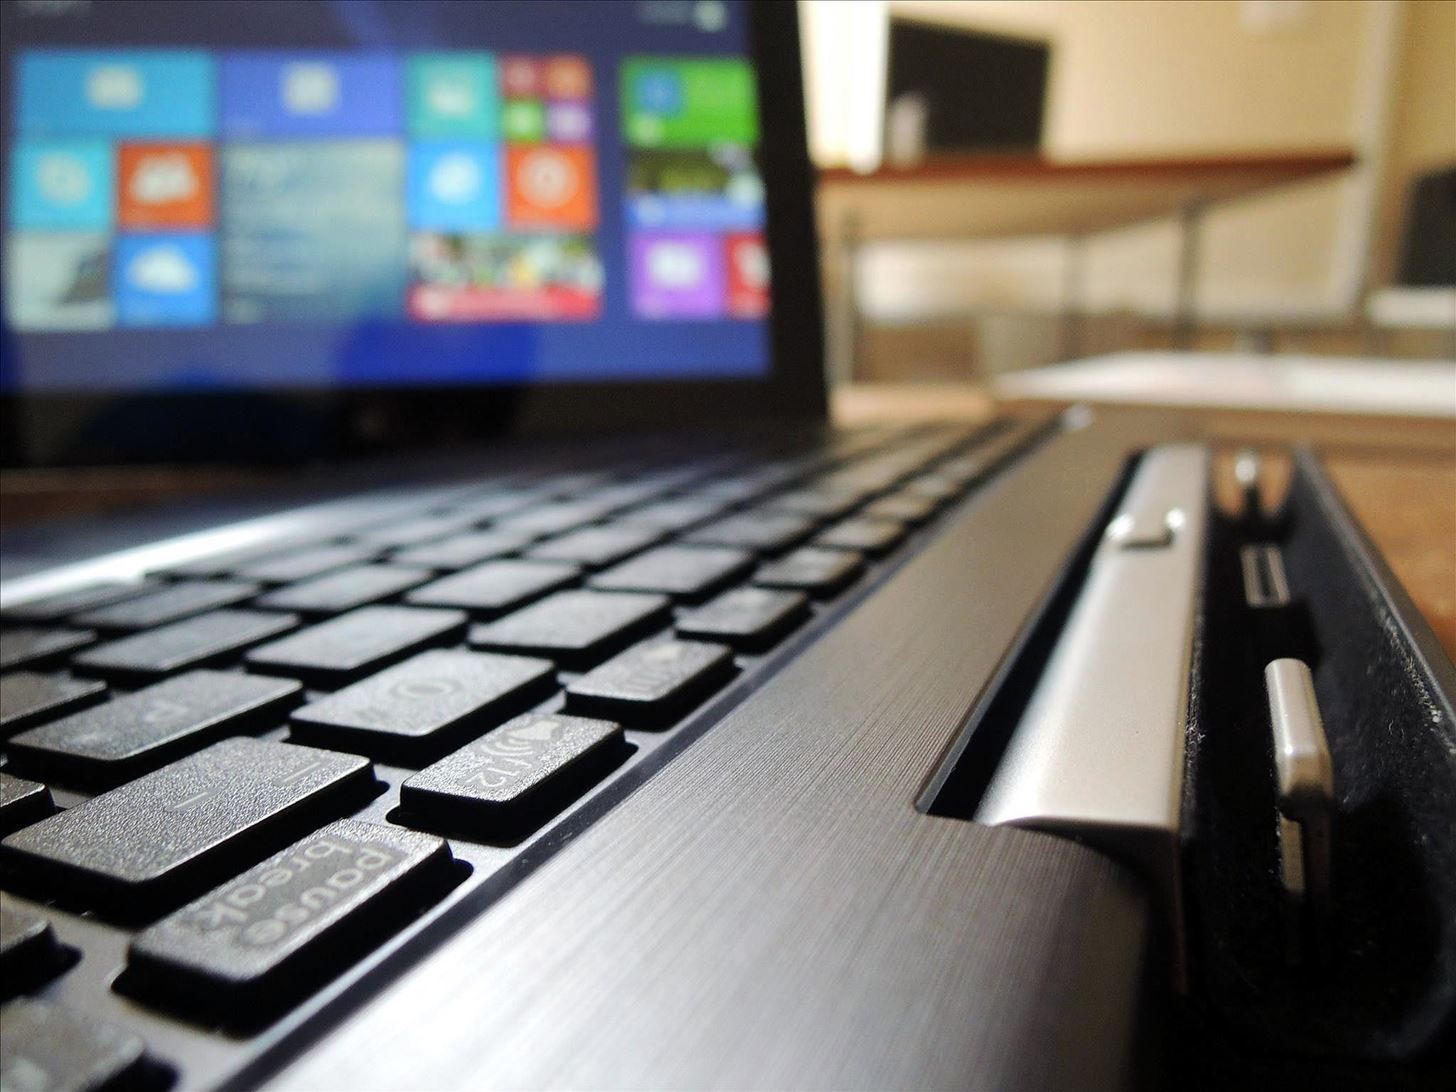 ASUS Transformer Book: The Tablet That Wants to Be Your Next Windows Laptop